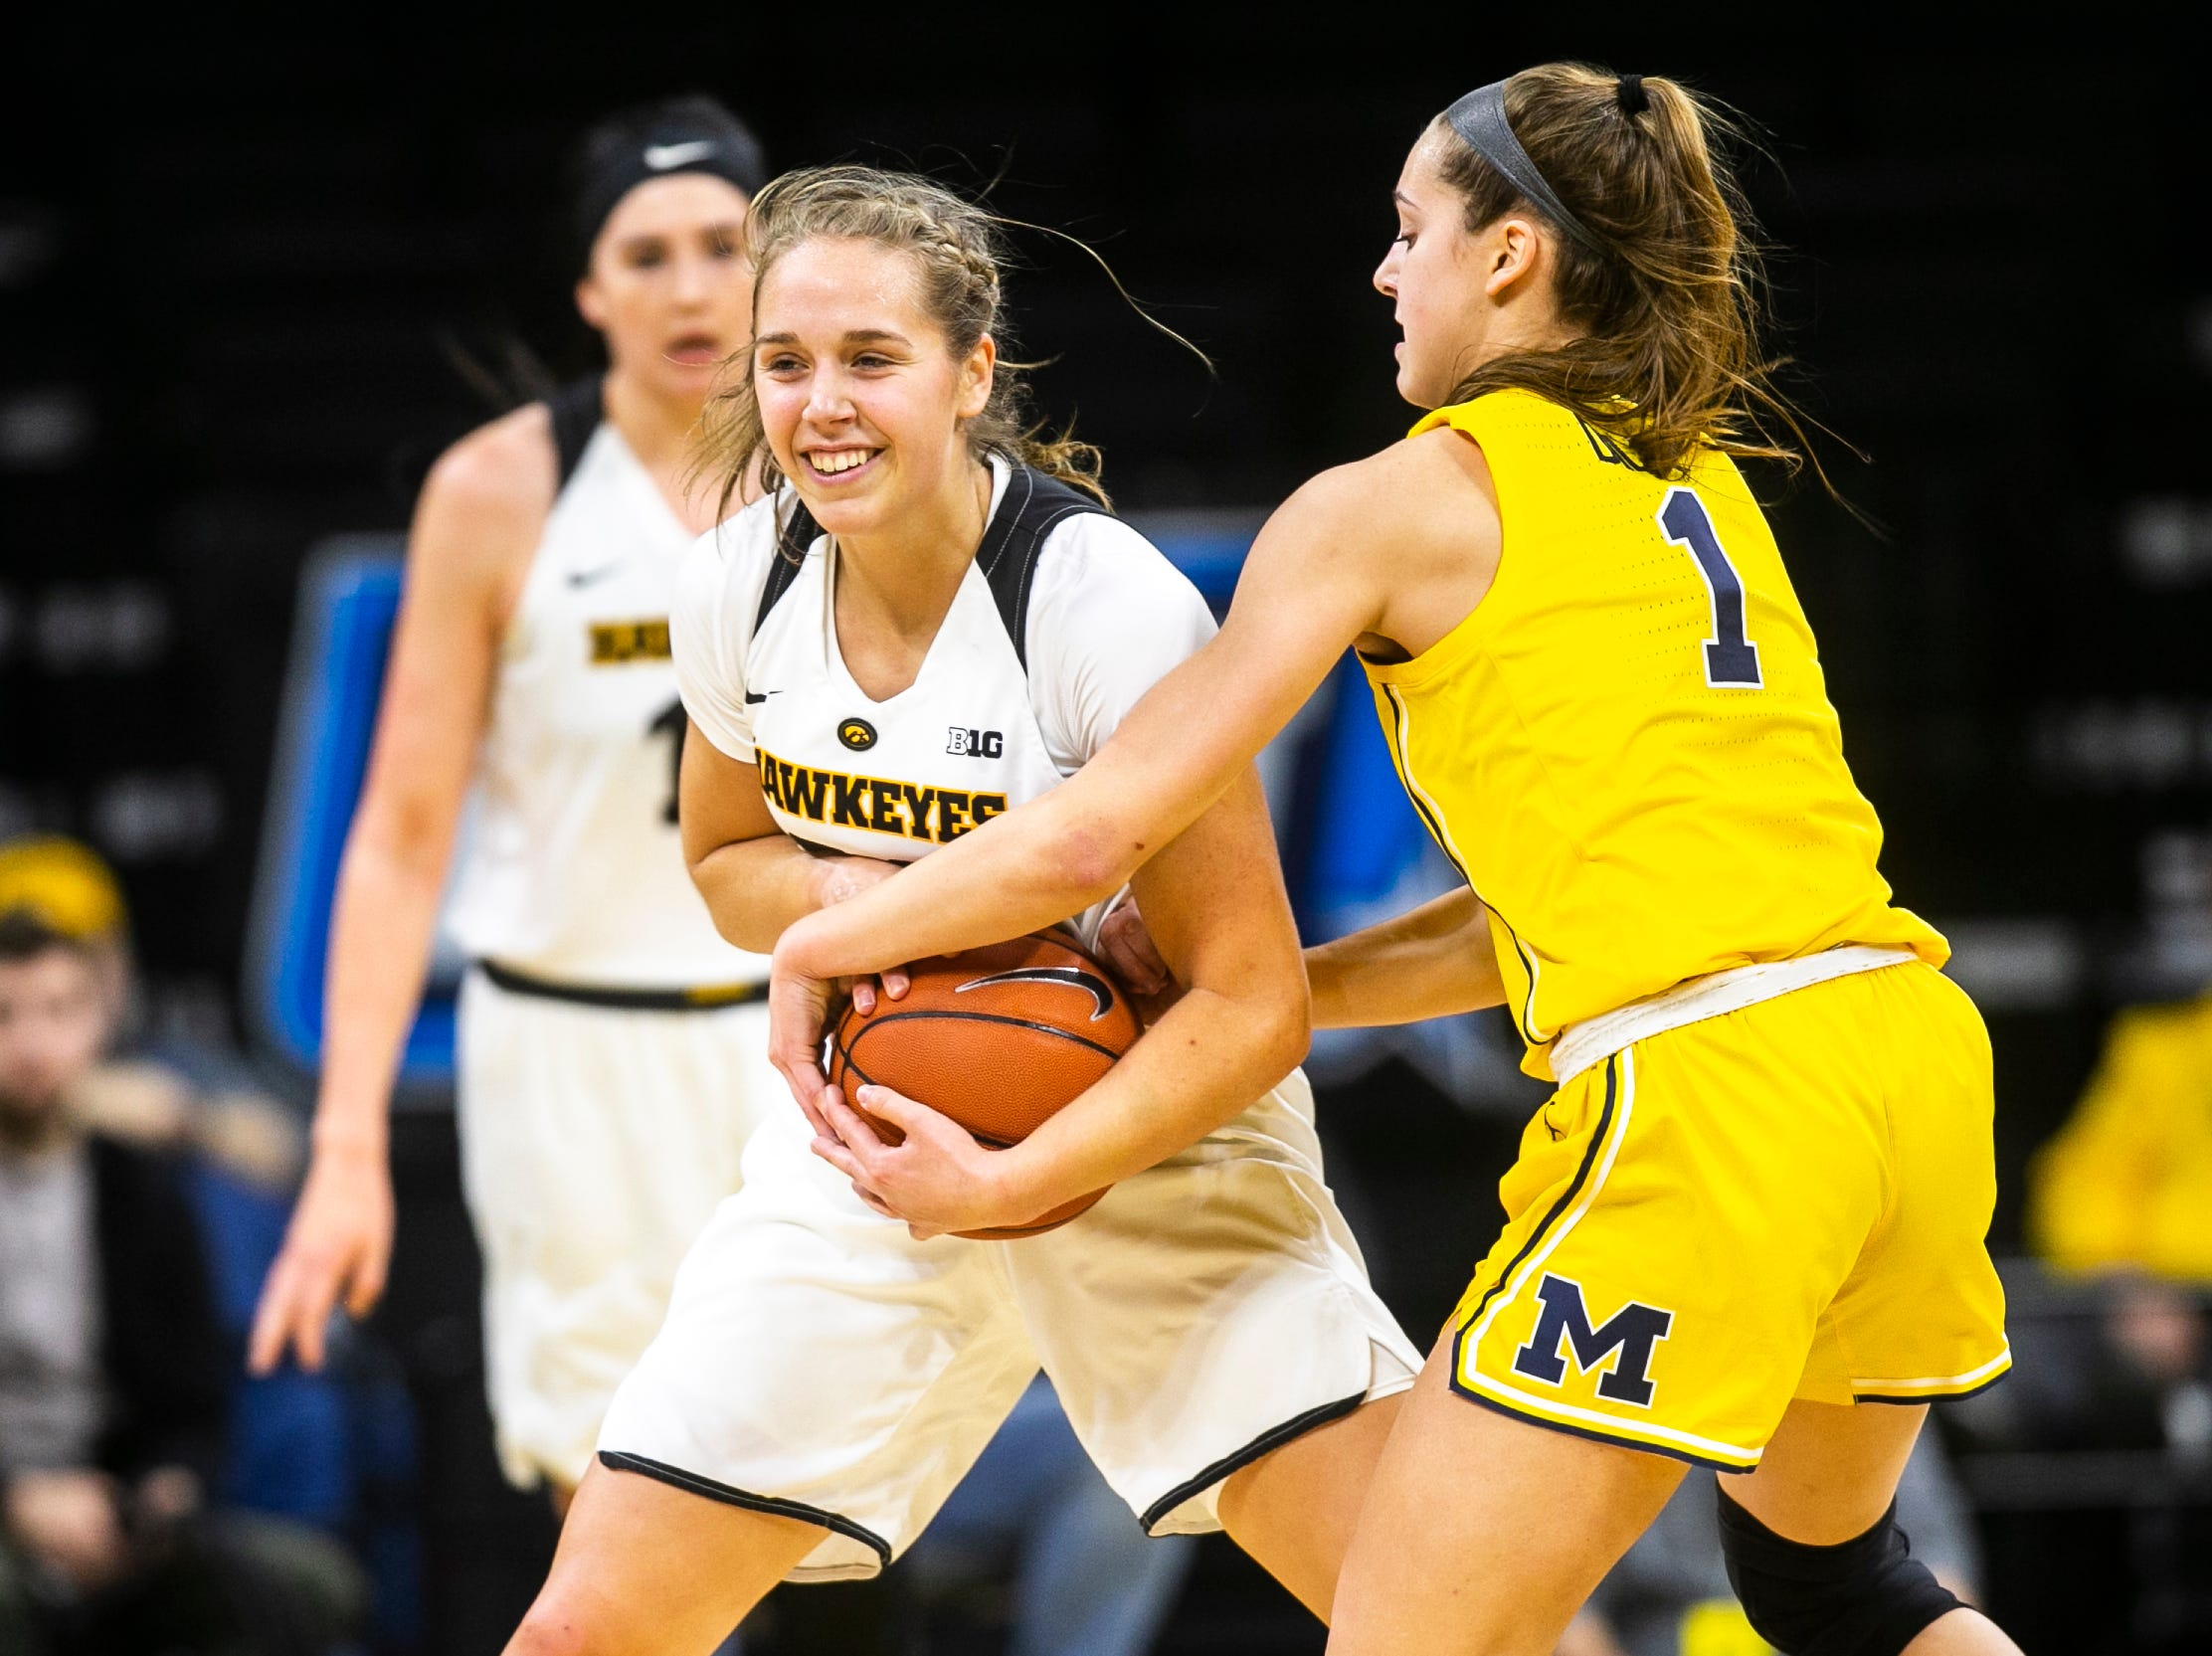 Iowa guard Kathleen Doyle (22) smiles while Michigan guard Amy Dilk (1) reaches in for a jump ball during a NCAA Big Ten Conference women's basketball game on Thursday, Jan. 17, 2019, at Carver-Hawkeye Arena in Iowa City, Iowa.